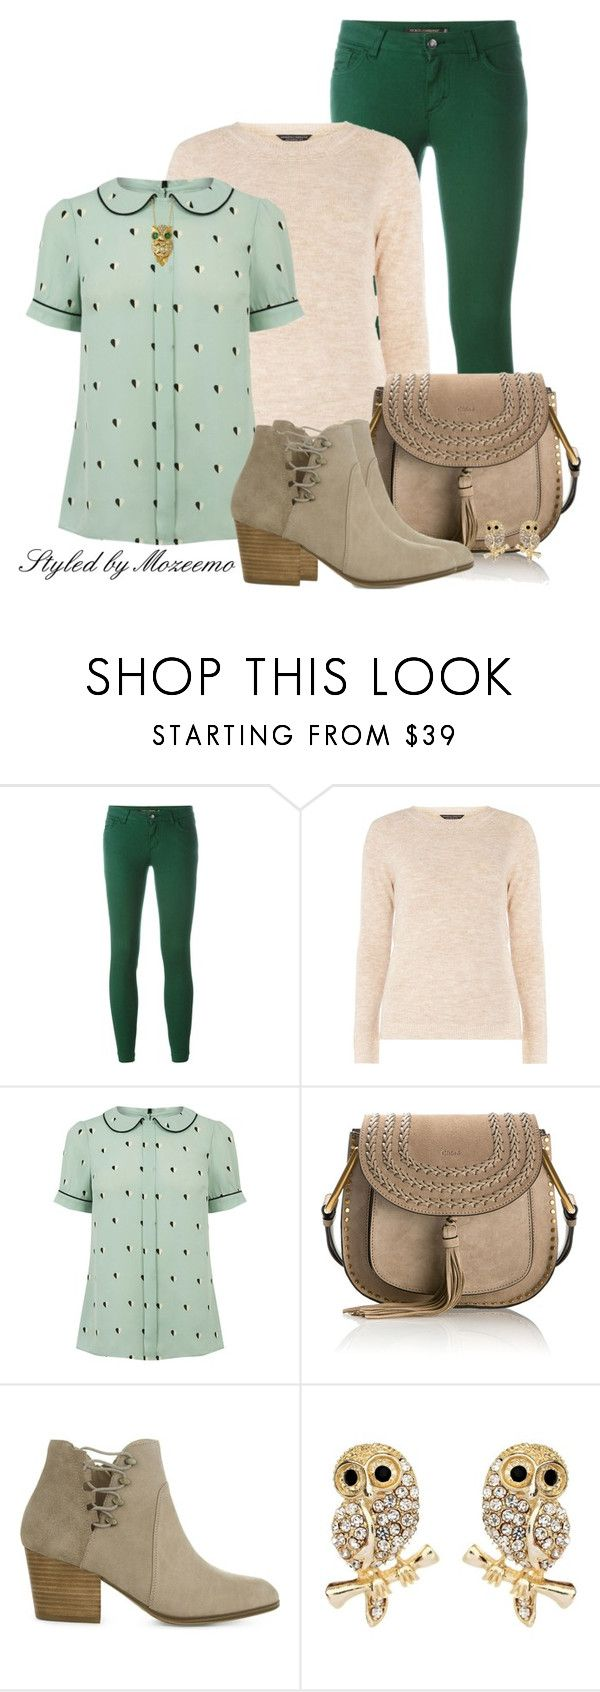 """""""Camel Plait Neck Jumper"""" by mozeemo ❤ liked on Polyvore featuring Dolce&Gabbana, mel, Oasis, Chloé, ALDO, Amrita Singh and Effy Jewelry"""